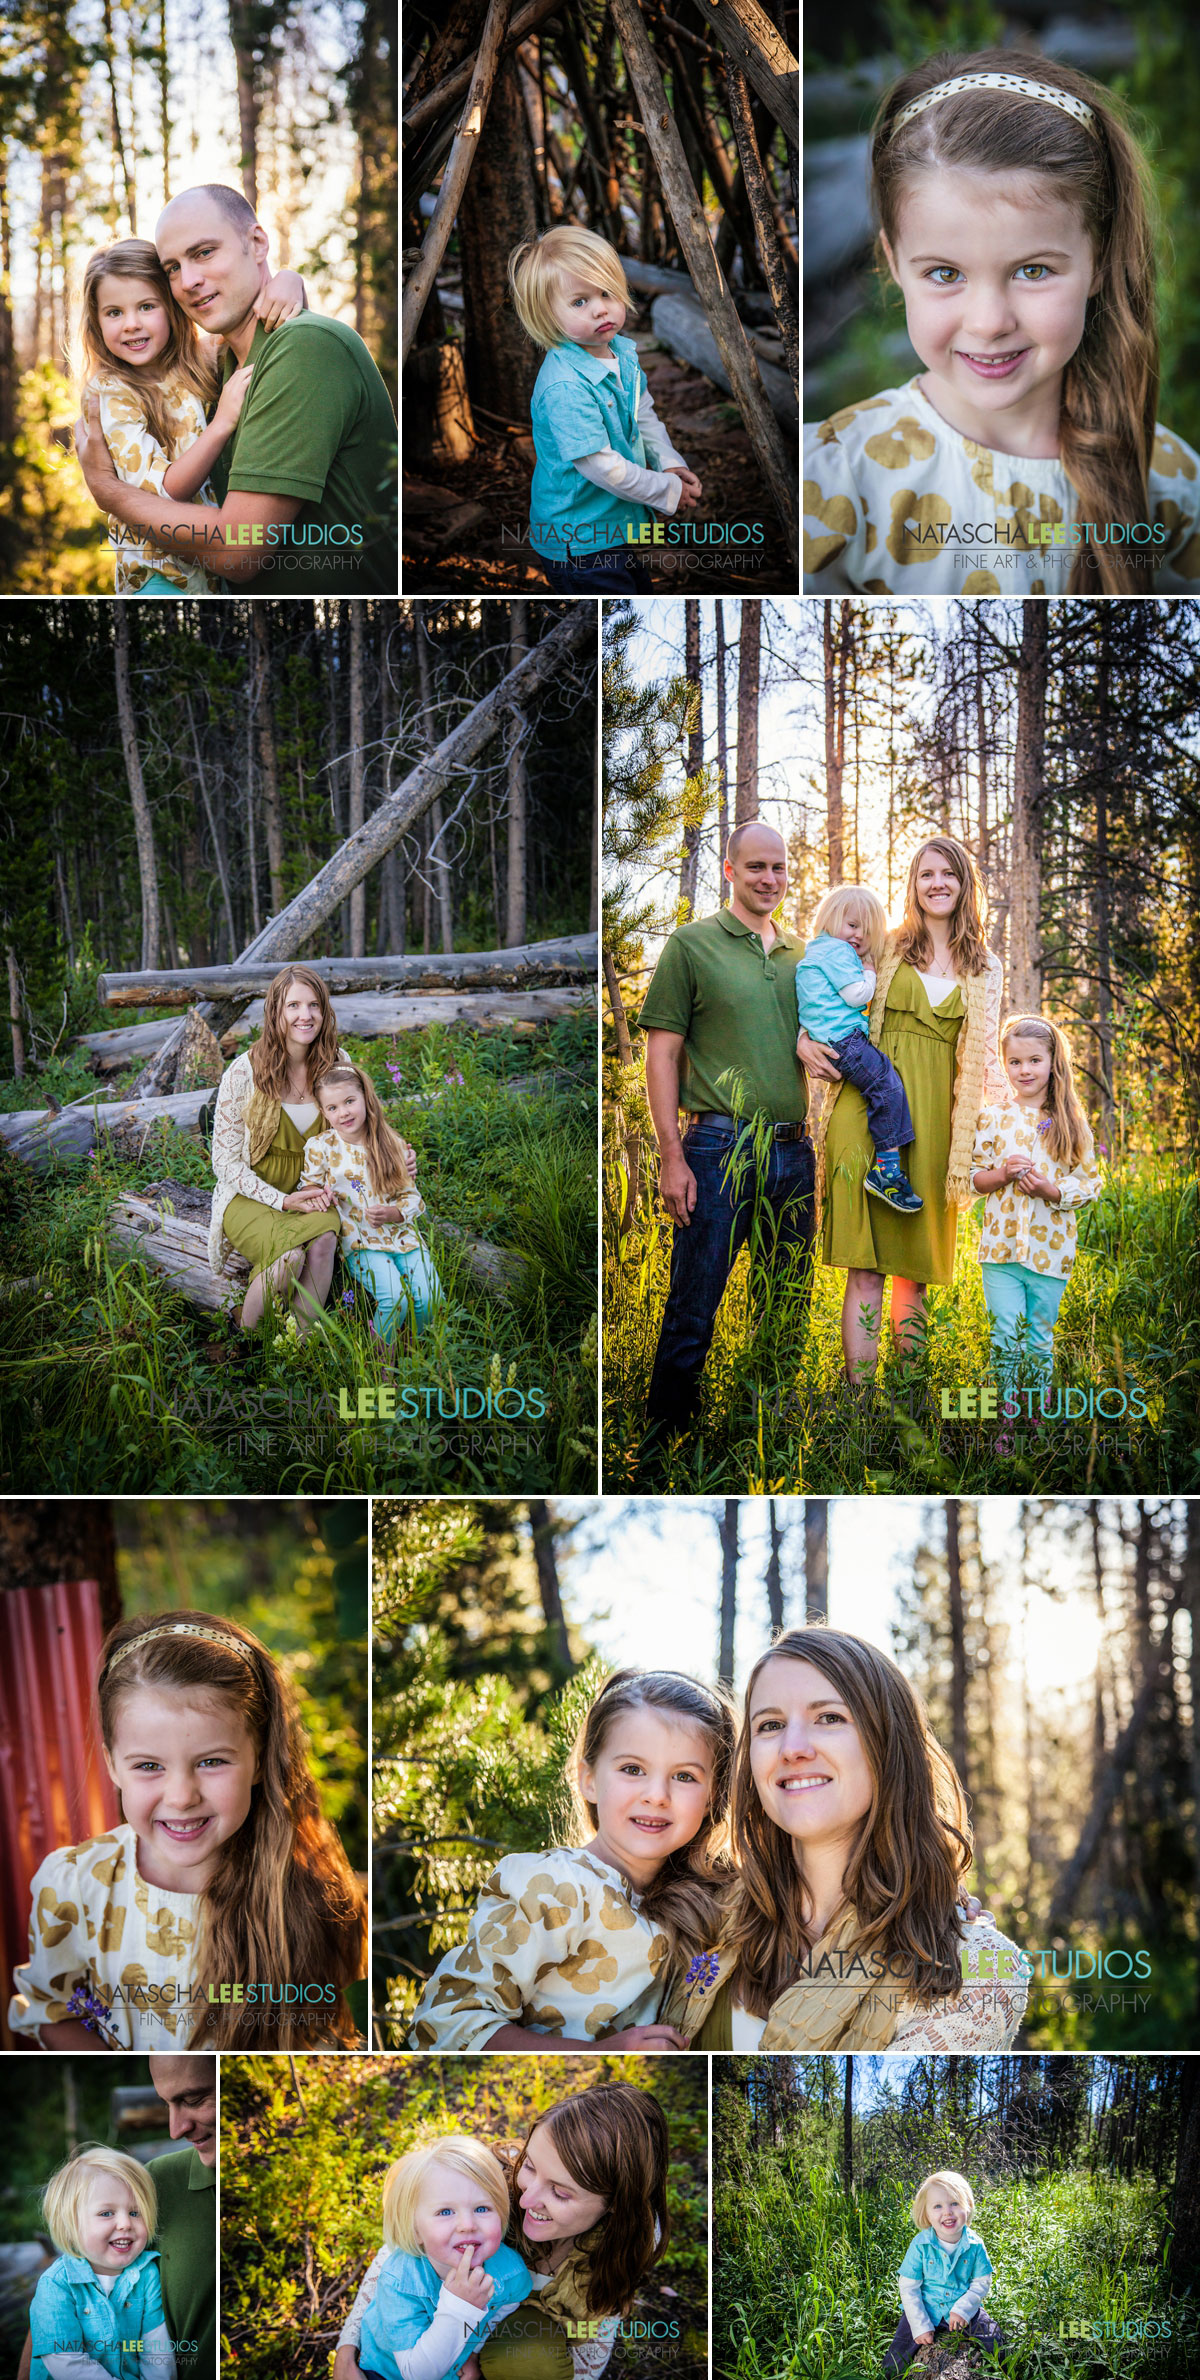 Fraser Family Portraits Outdoors by Natascha Lee Studios